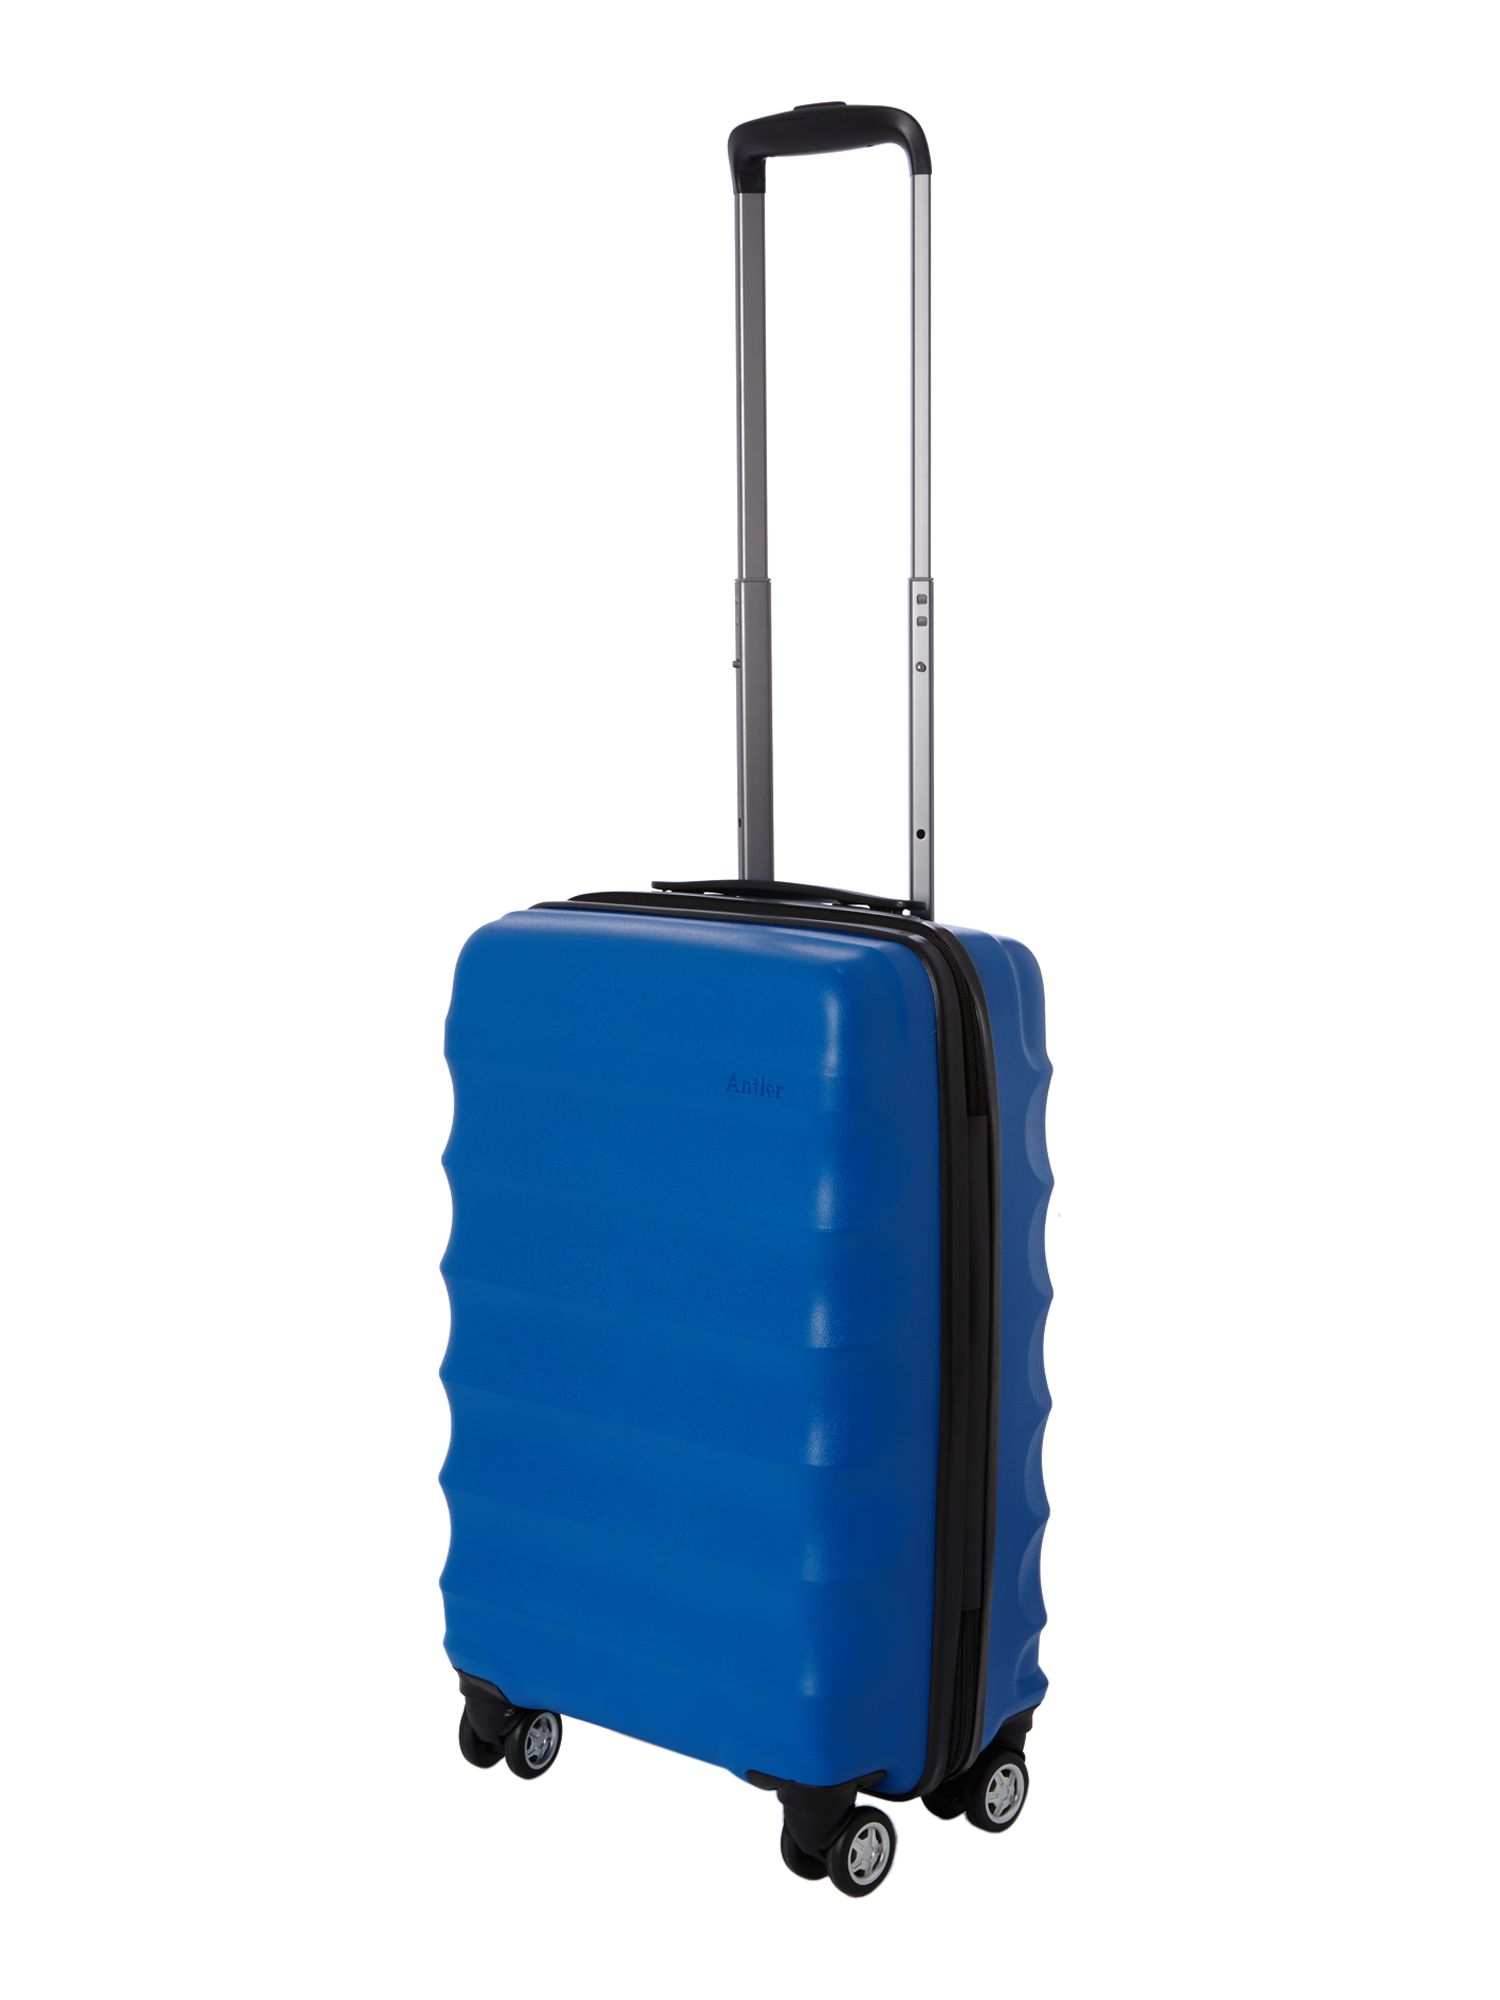 Juno 4 wheel panel blue hard cabin rollercase